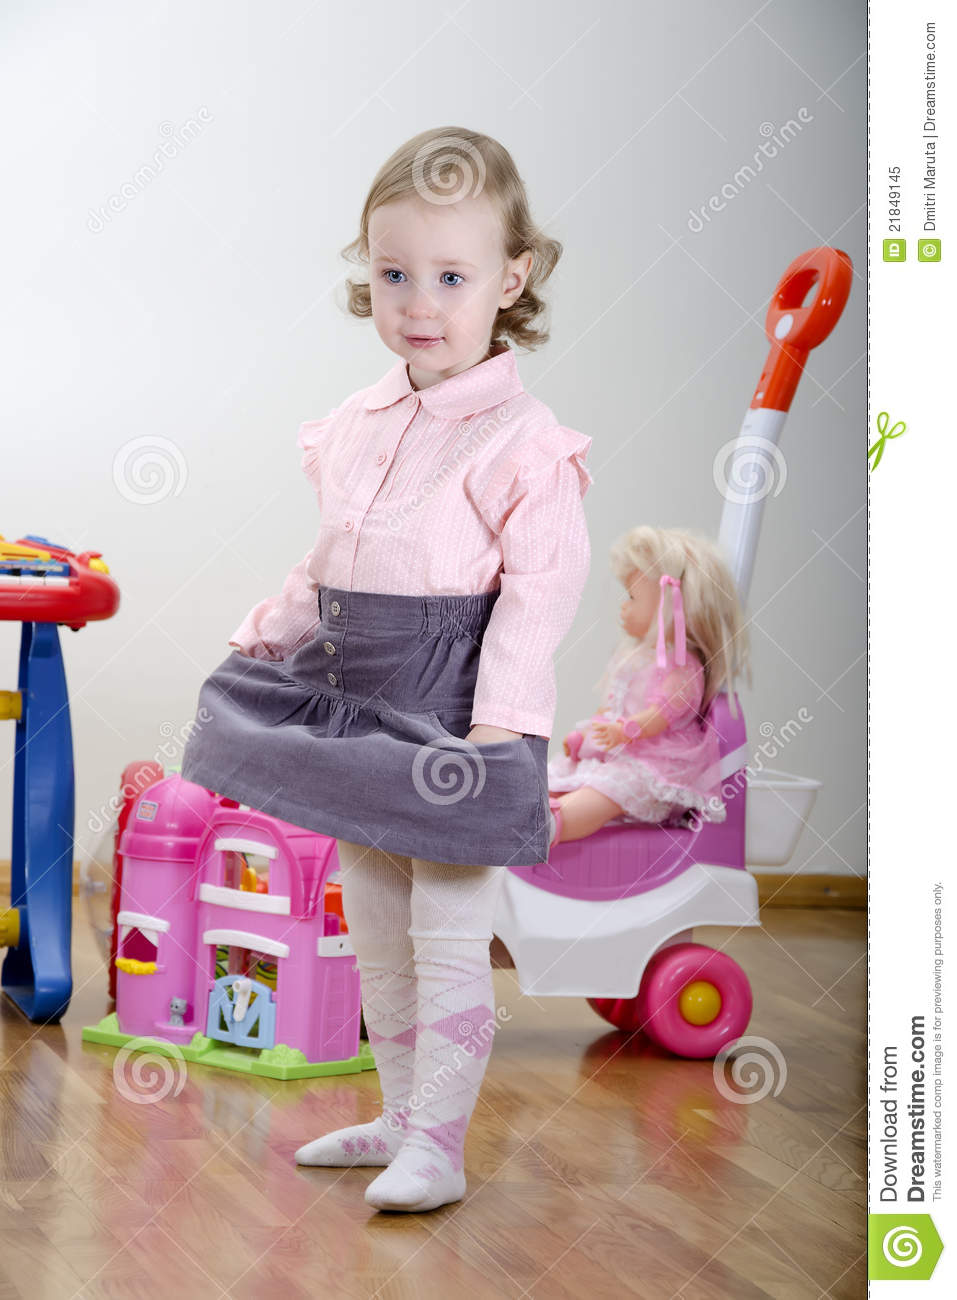 Little Girl Toys : Little girl in a room with toys royalty free stock photo